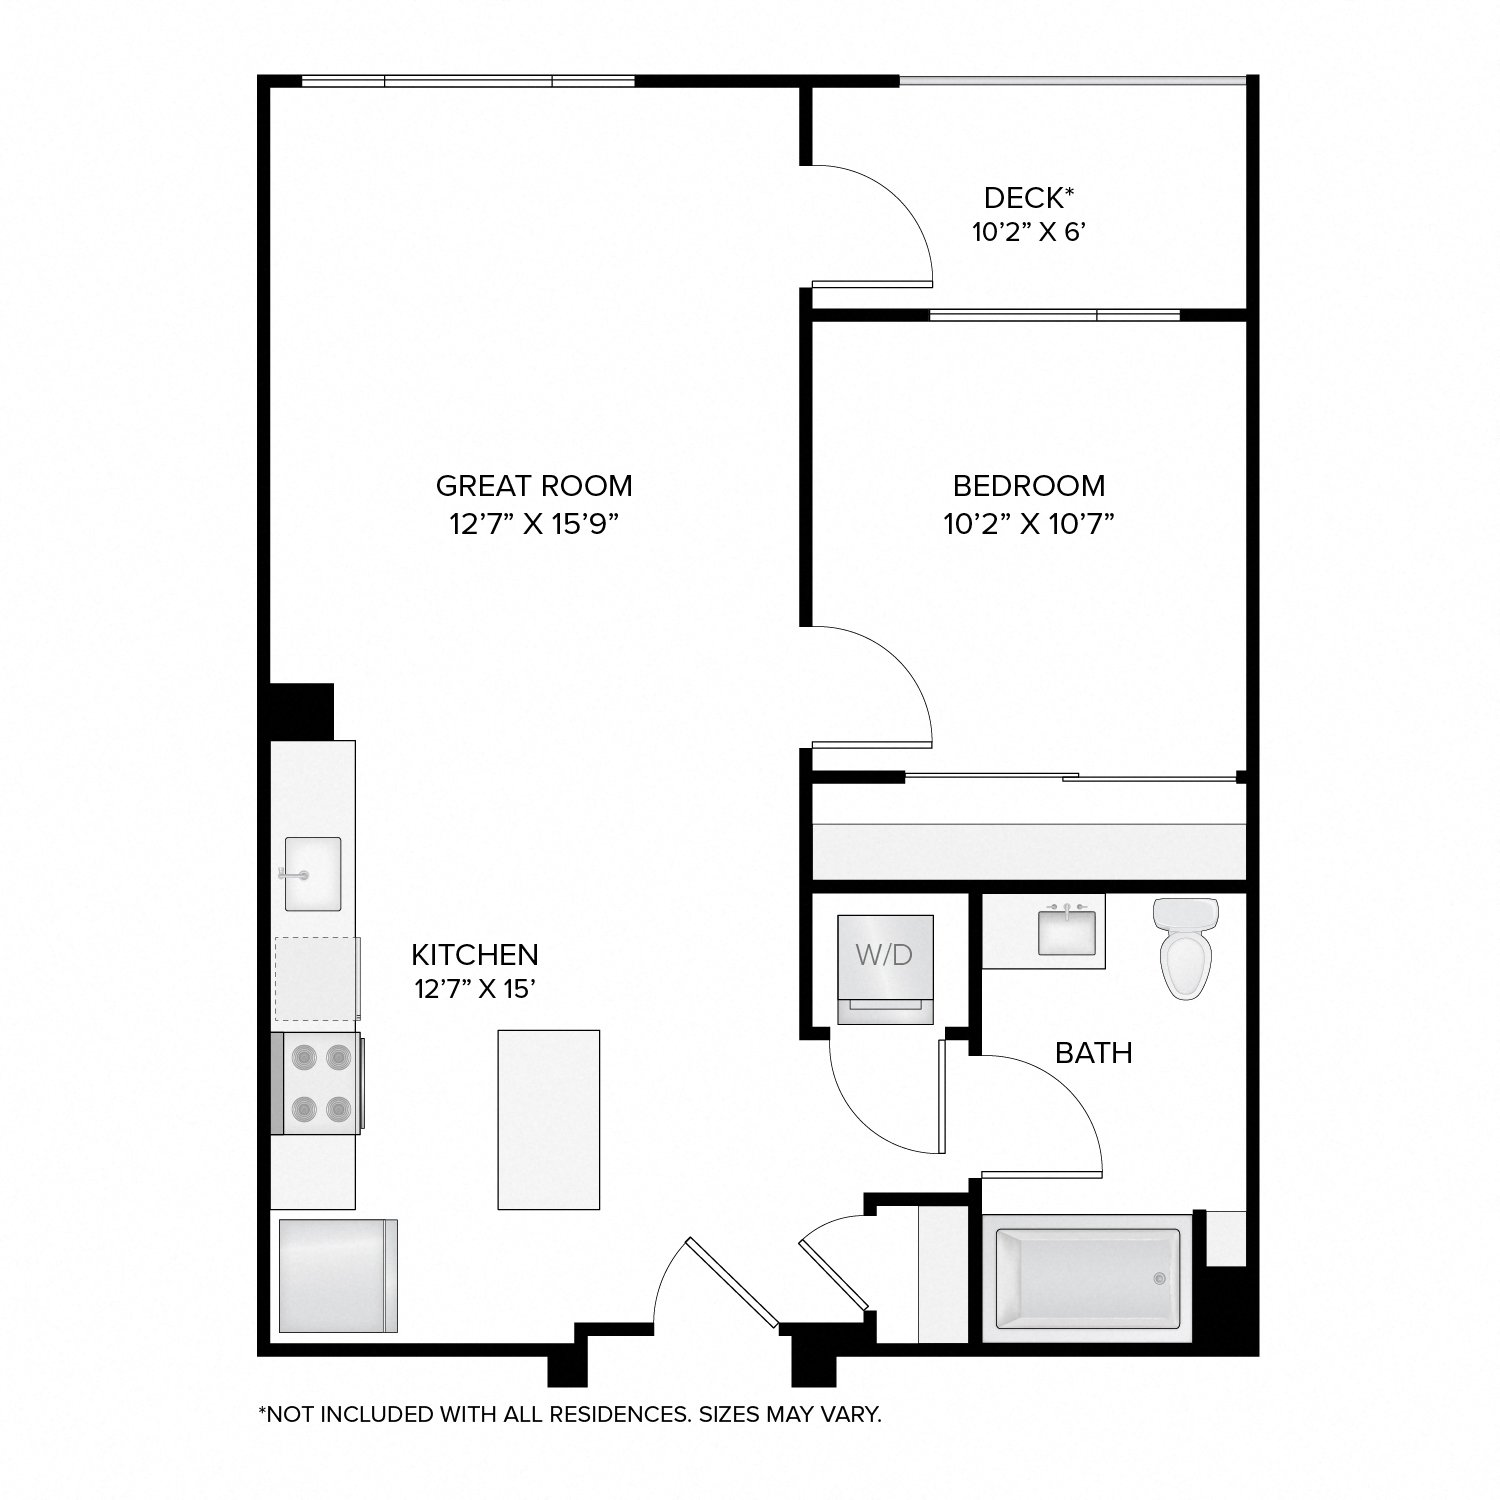 Diagram of the Franklin Classic Reverse plan. One bedroom, one bathroom, an open kitchen and living area, a washer dryer, and in select residences, a deck.